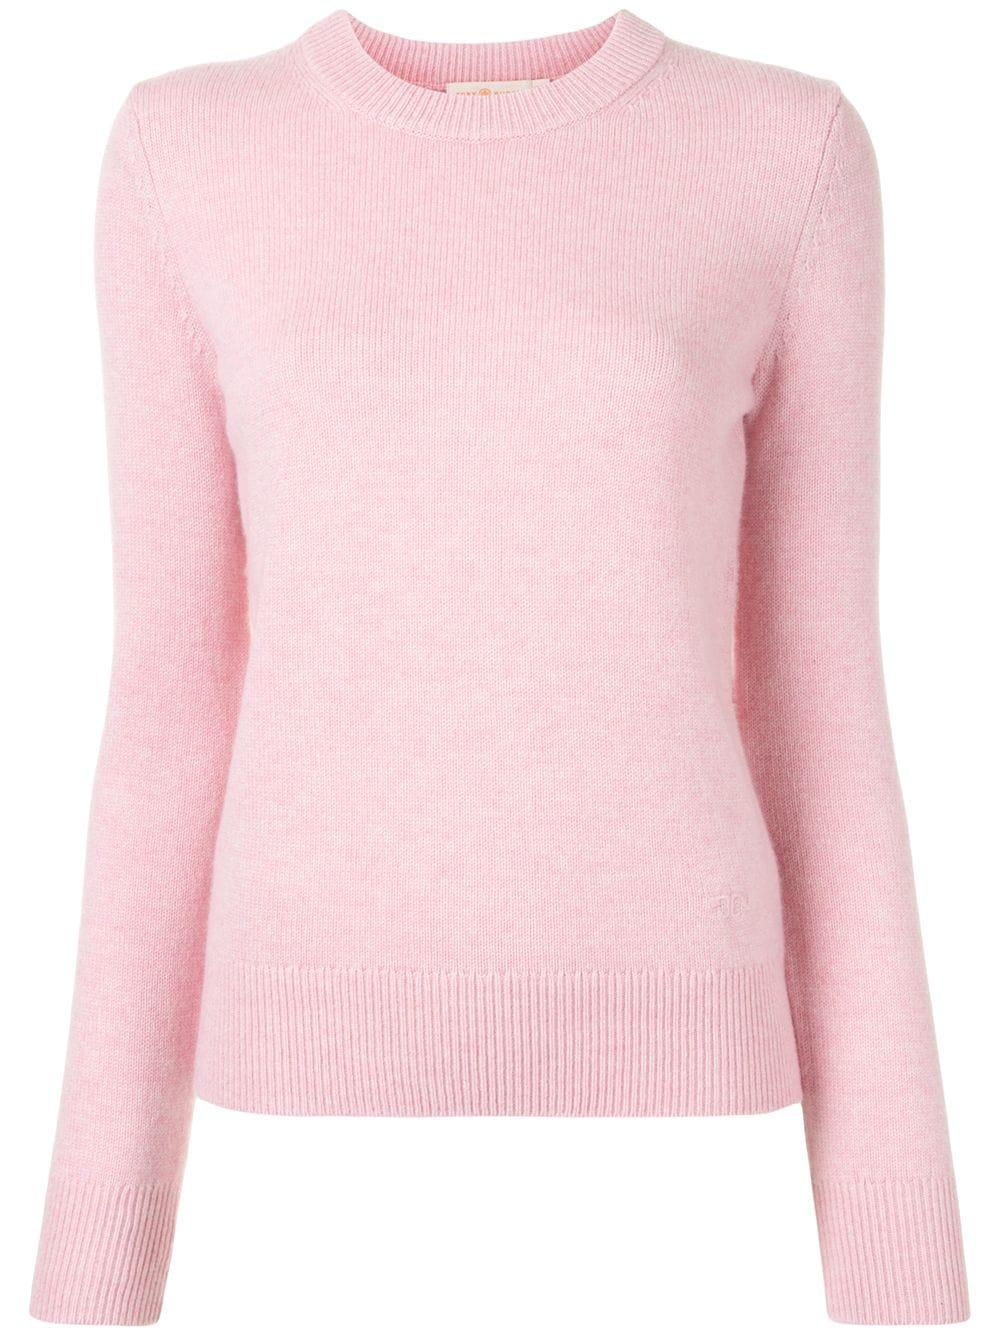 Cashmere Sweater With Sequin Elbow Patches Item # 77213-972